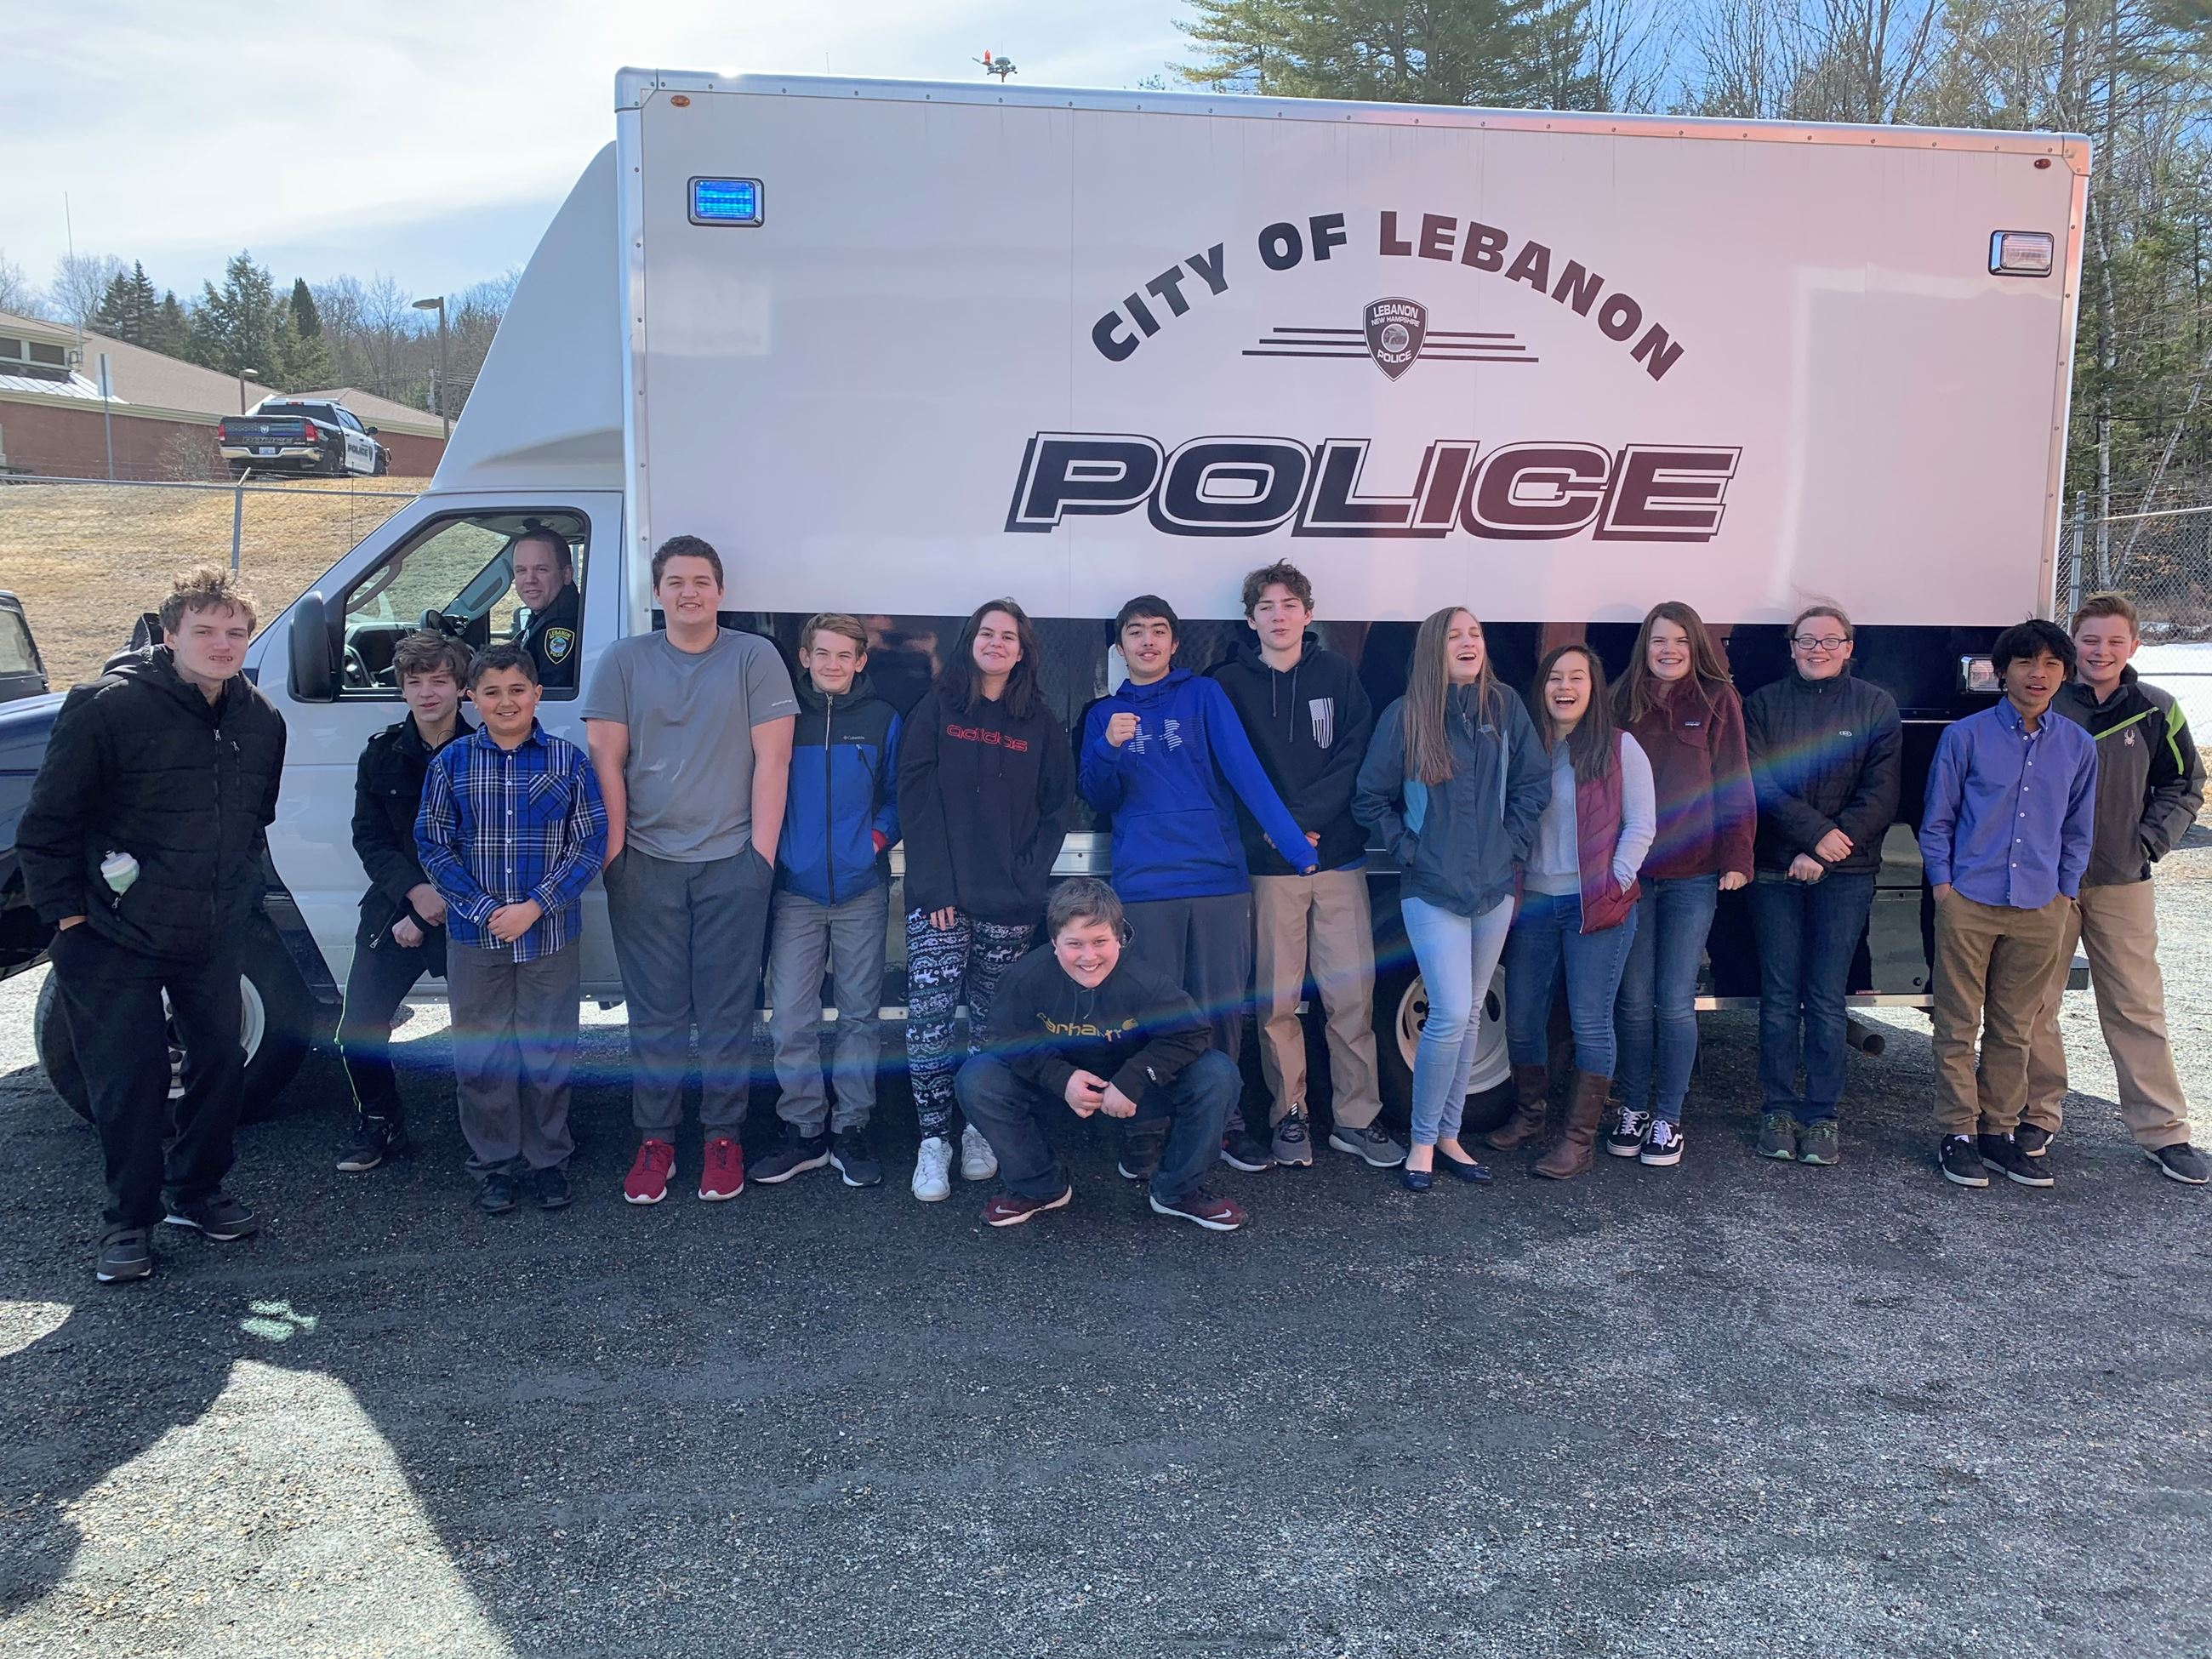 Group photo with command truck